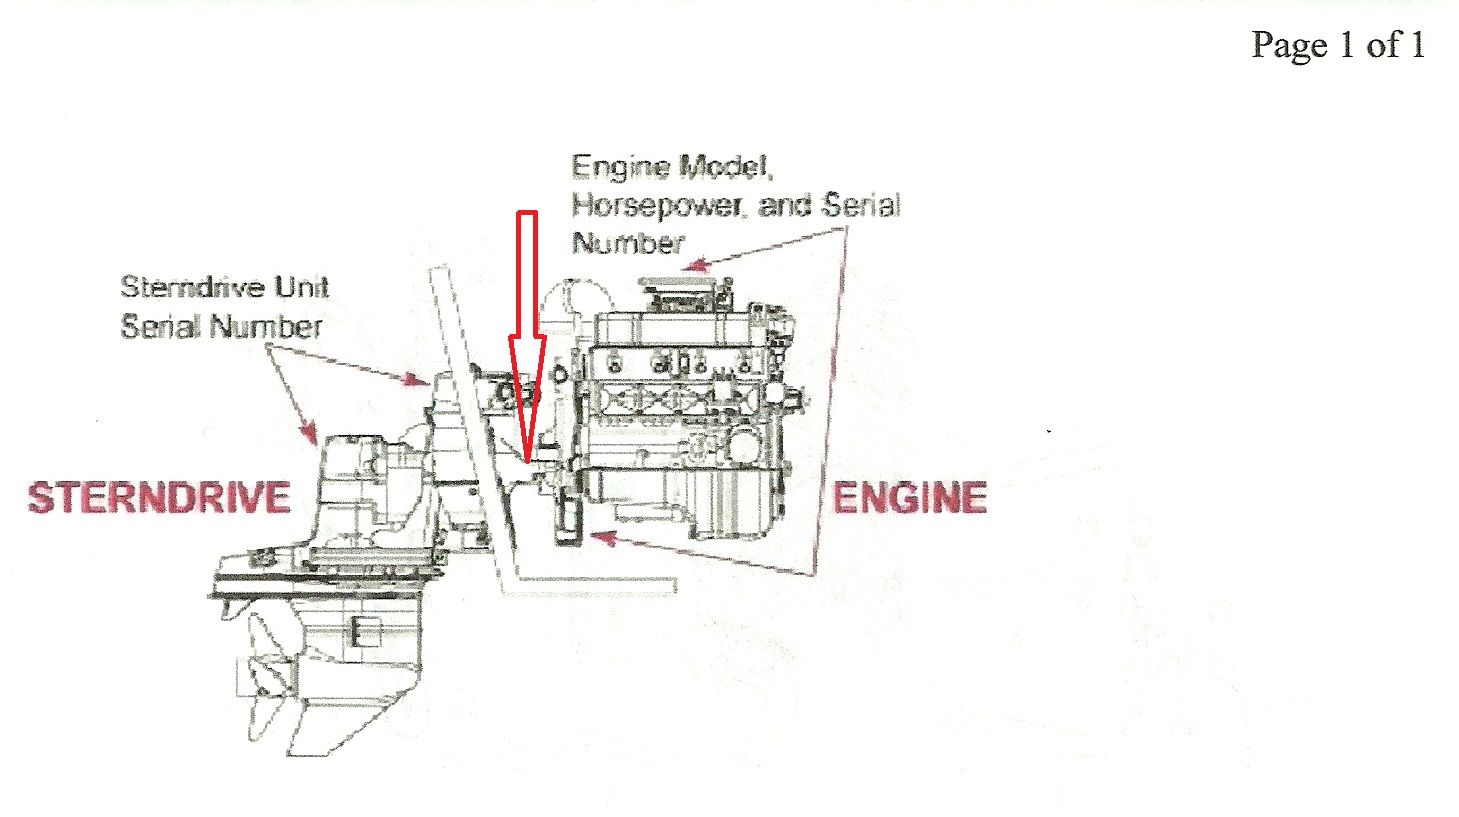 Singer 603 threading diagram besides Constant Current Source Calculator besides Gmcmh Drawings besides Wiring Diagram Kawasaki Klx 250 Keluaran Tahun 2012 S ai 2015 furthermore 82 Club Car Wiring Diagram. on motor diagrams